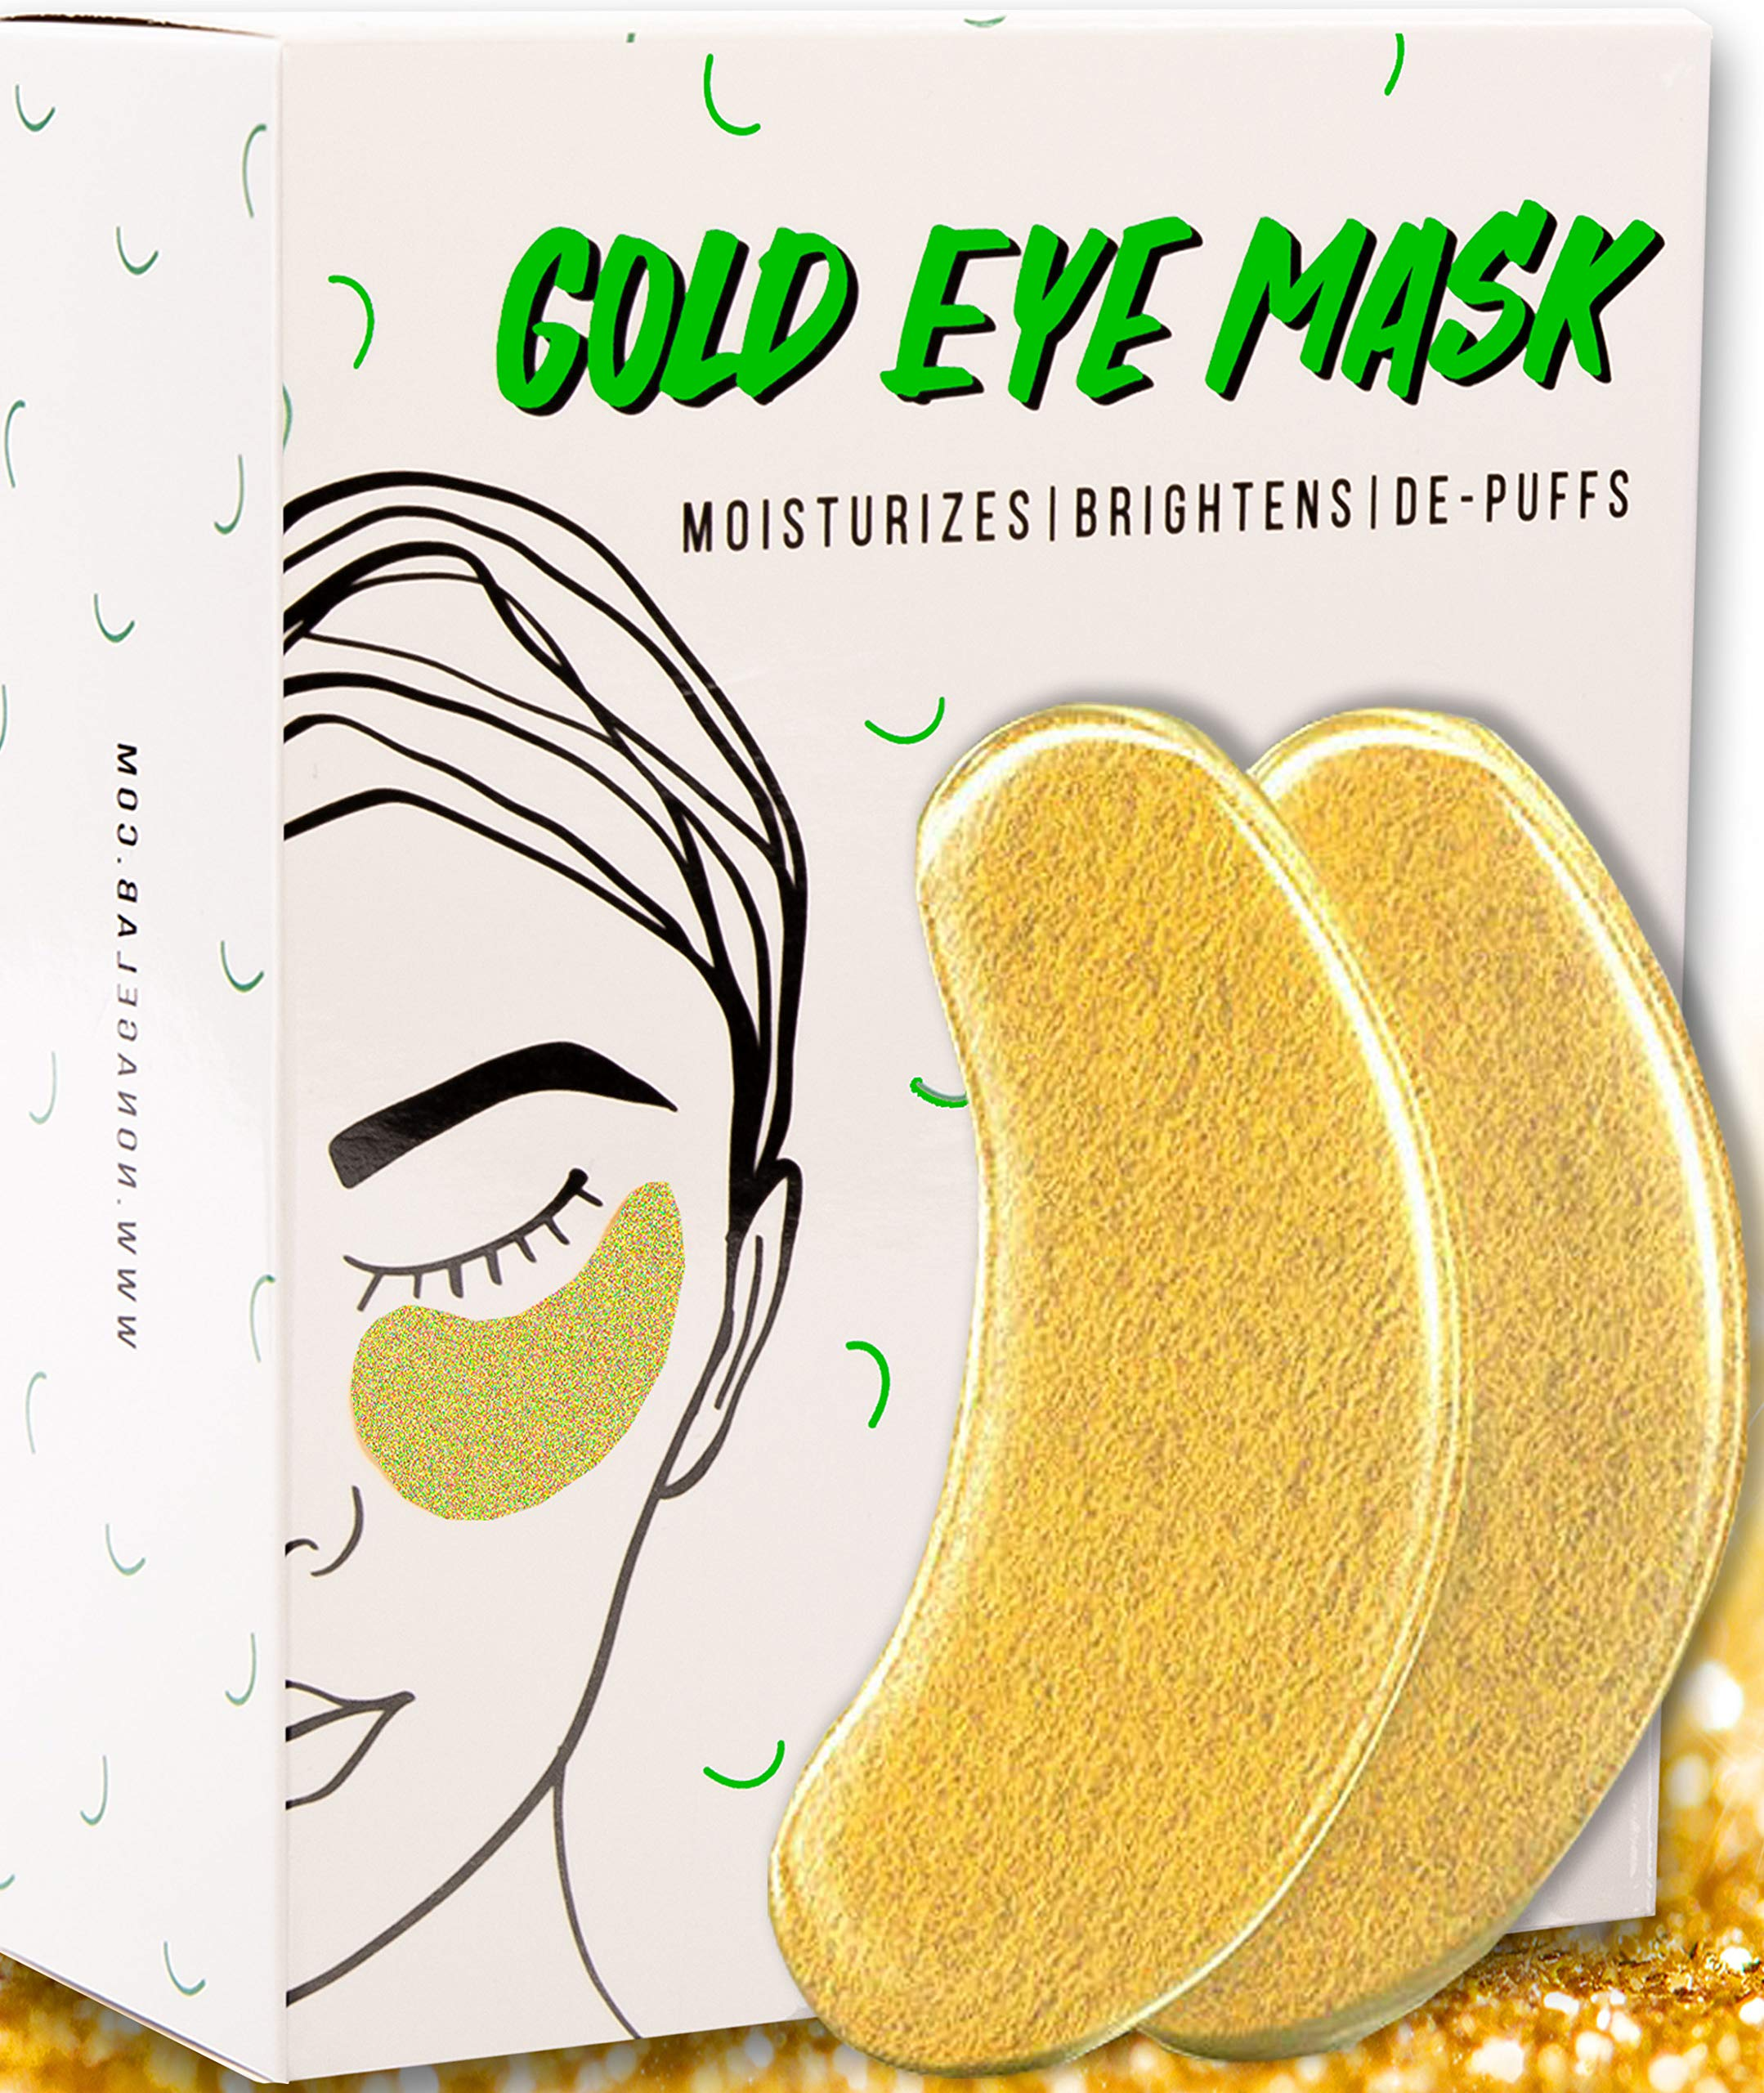 Under Eye Gold Eye Mask - Energizing, Moisturising 24k Gold Collagen Patches for Reducing Dark Circles Puffiness Undereye Bags, Wrinkles (15 Pairs) by NonAgeLab